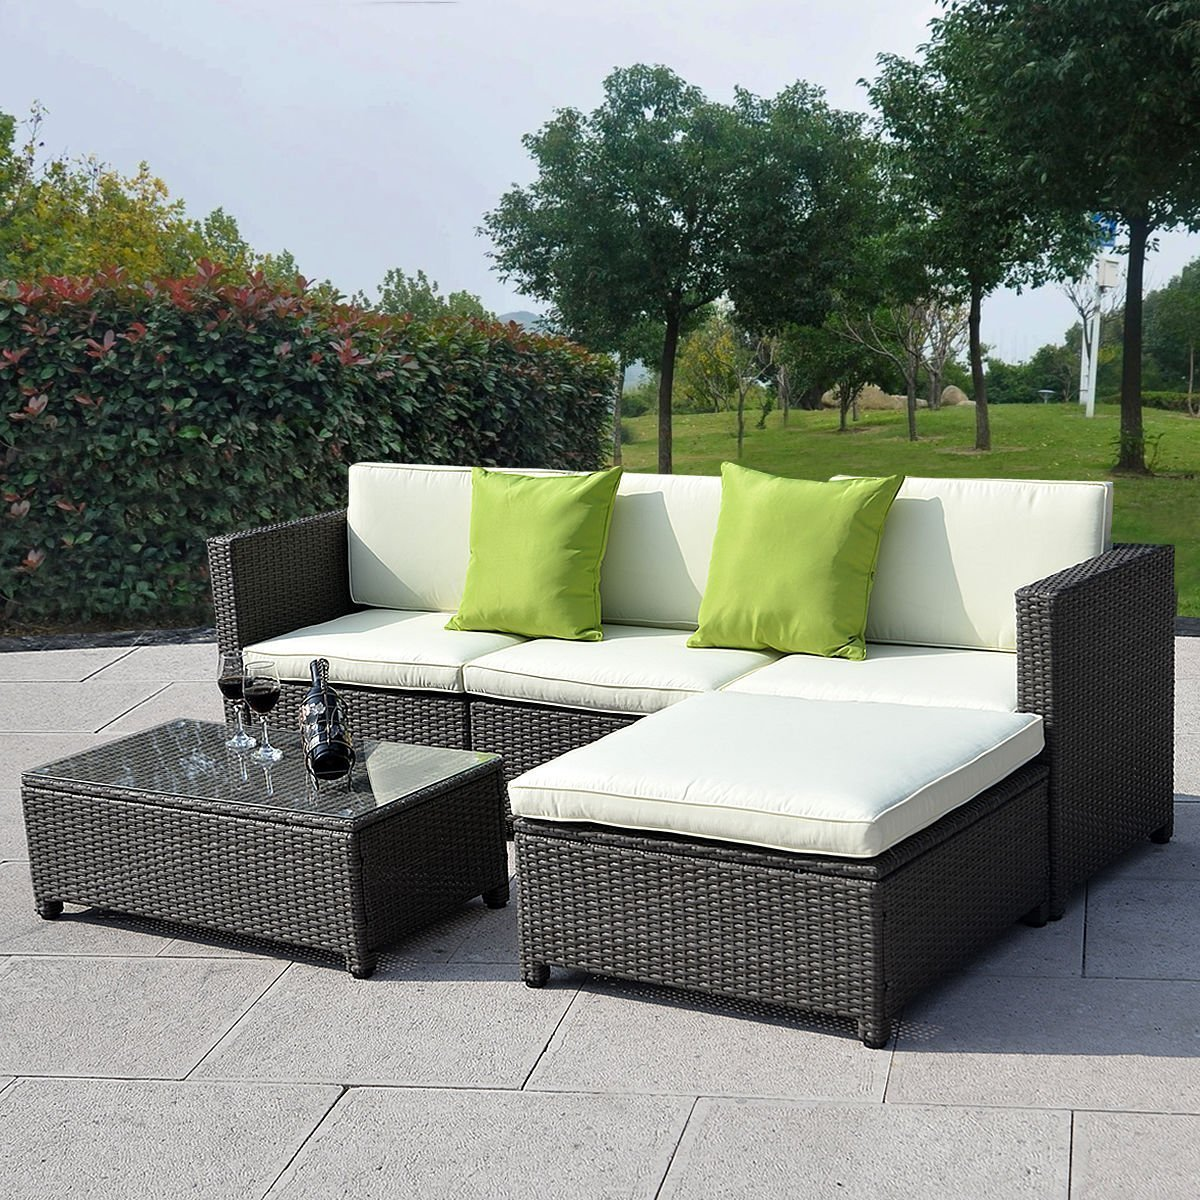 Wonderful Amazon.com : Goplus® Outdoor Patio 5PC Furniture Sectional PE Wicker Rattan  Sofa Set Deck Couch Black : Garden U0026 Outdoor